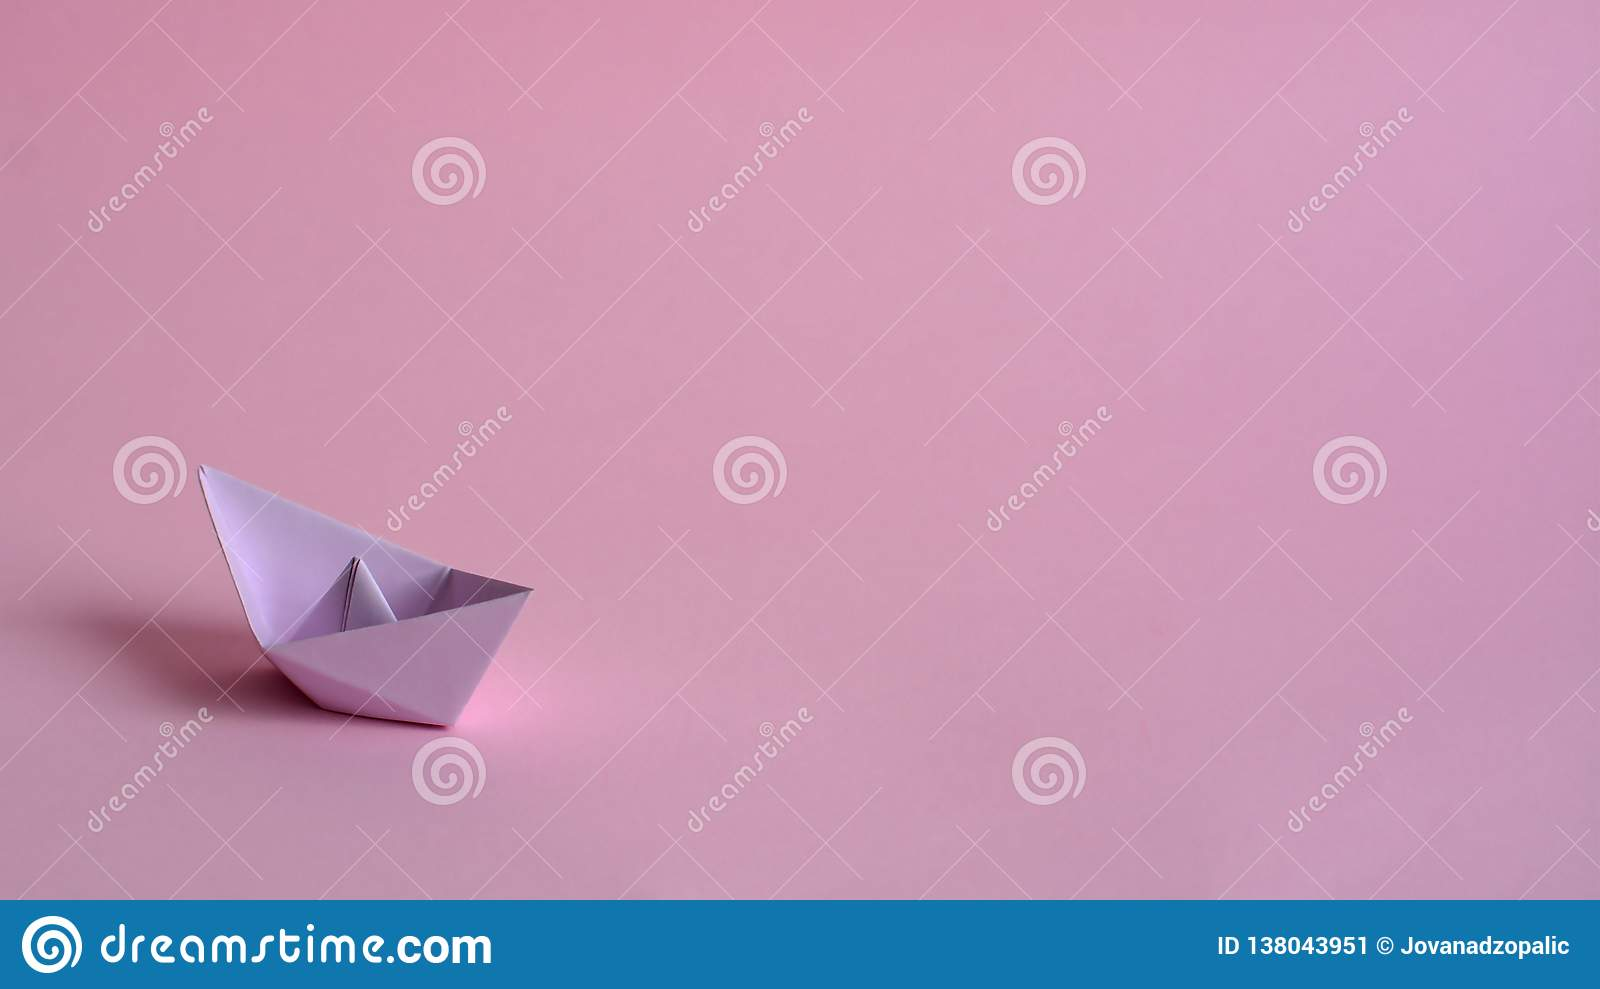 Purple paper boat on a light pink background.